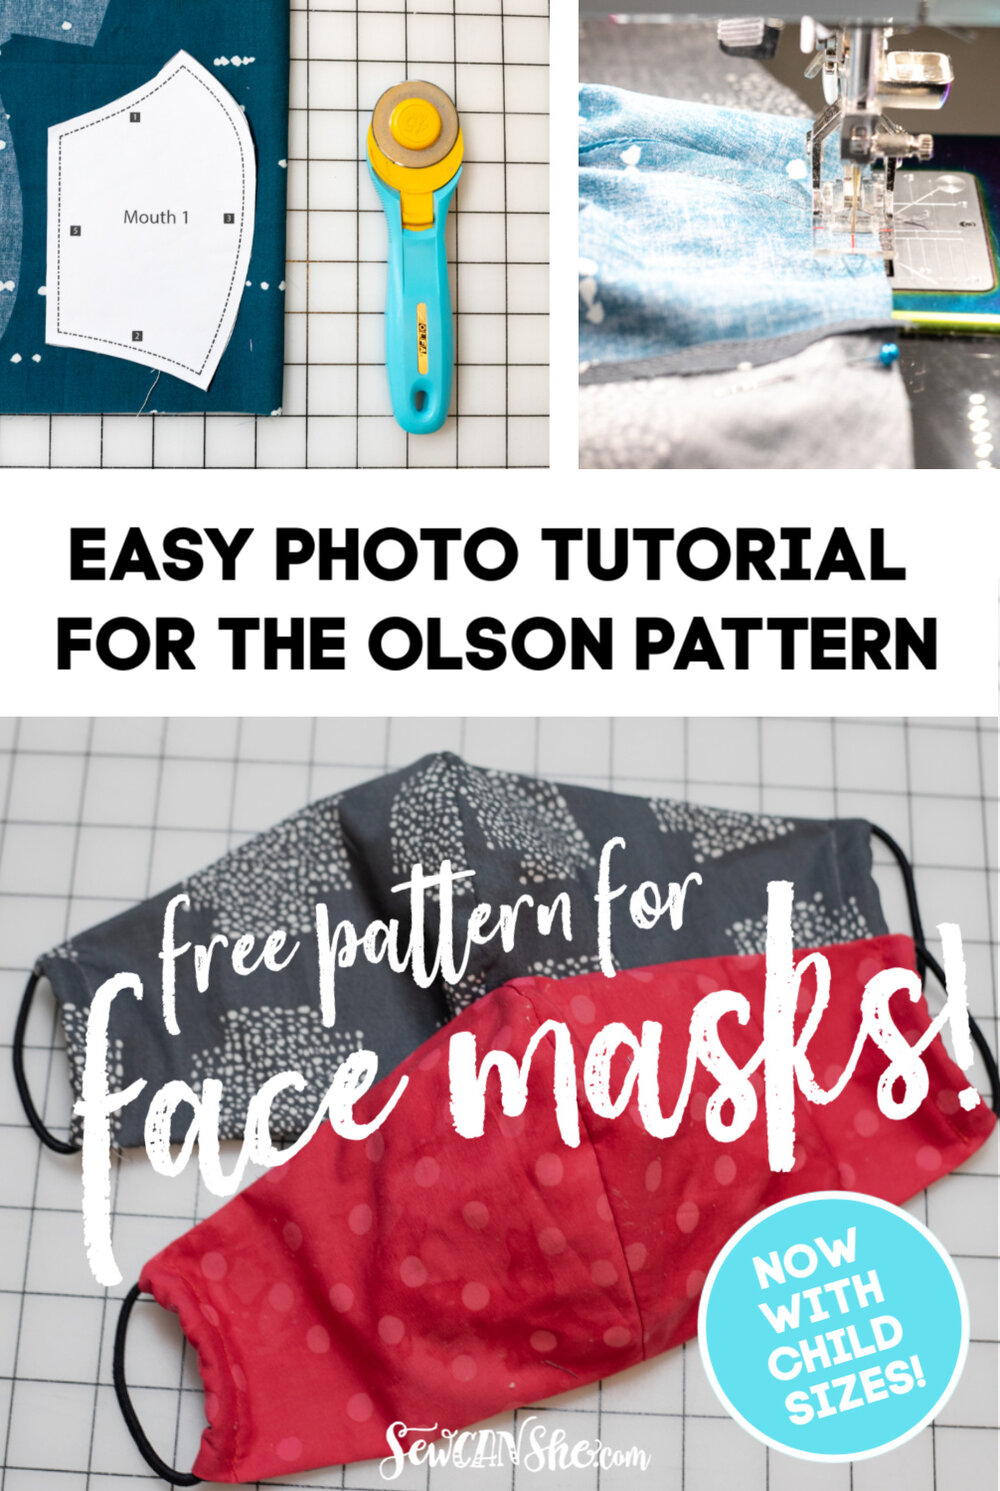 Simple Step By Step Tutorial For The Olson Face Mask